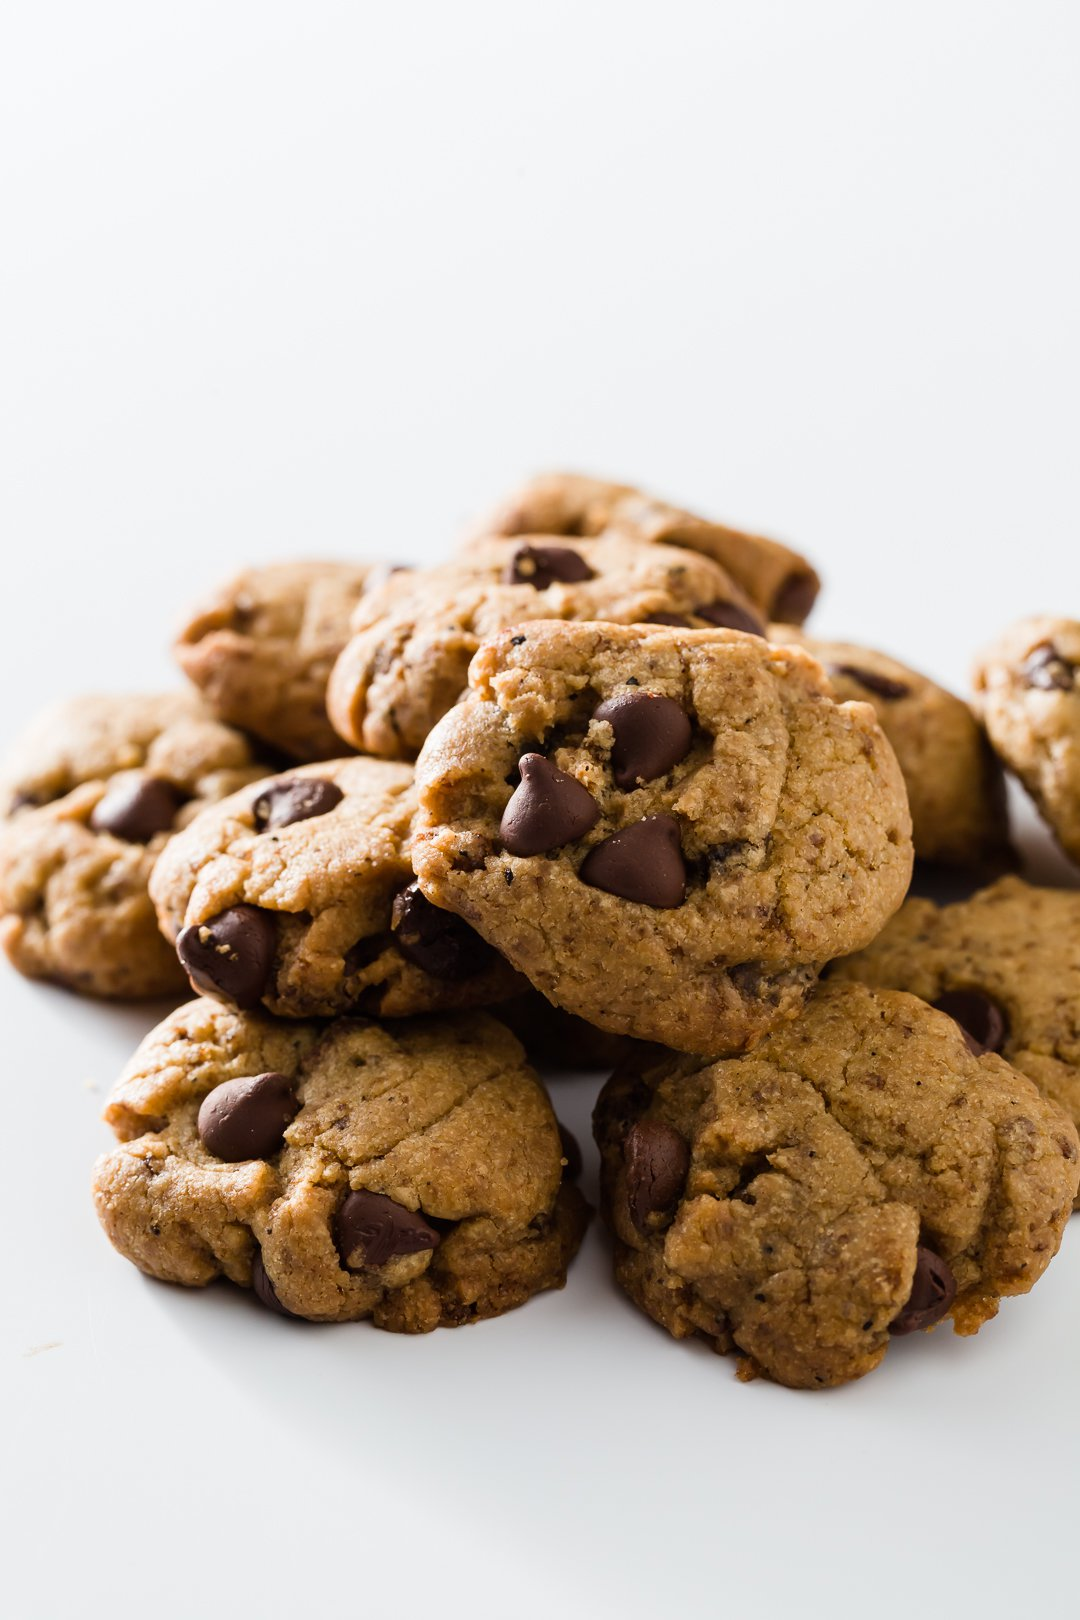 Pile of brown butter chocolate chip cookies on white background